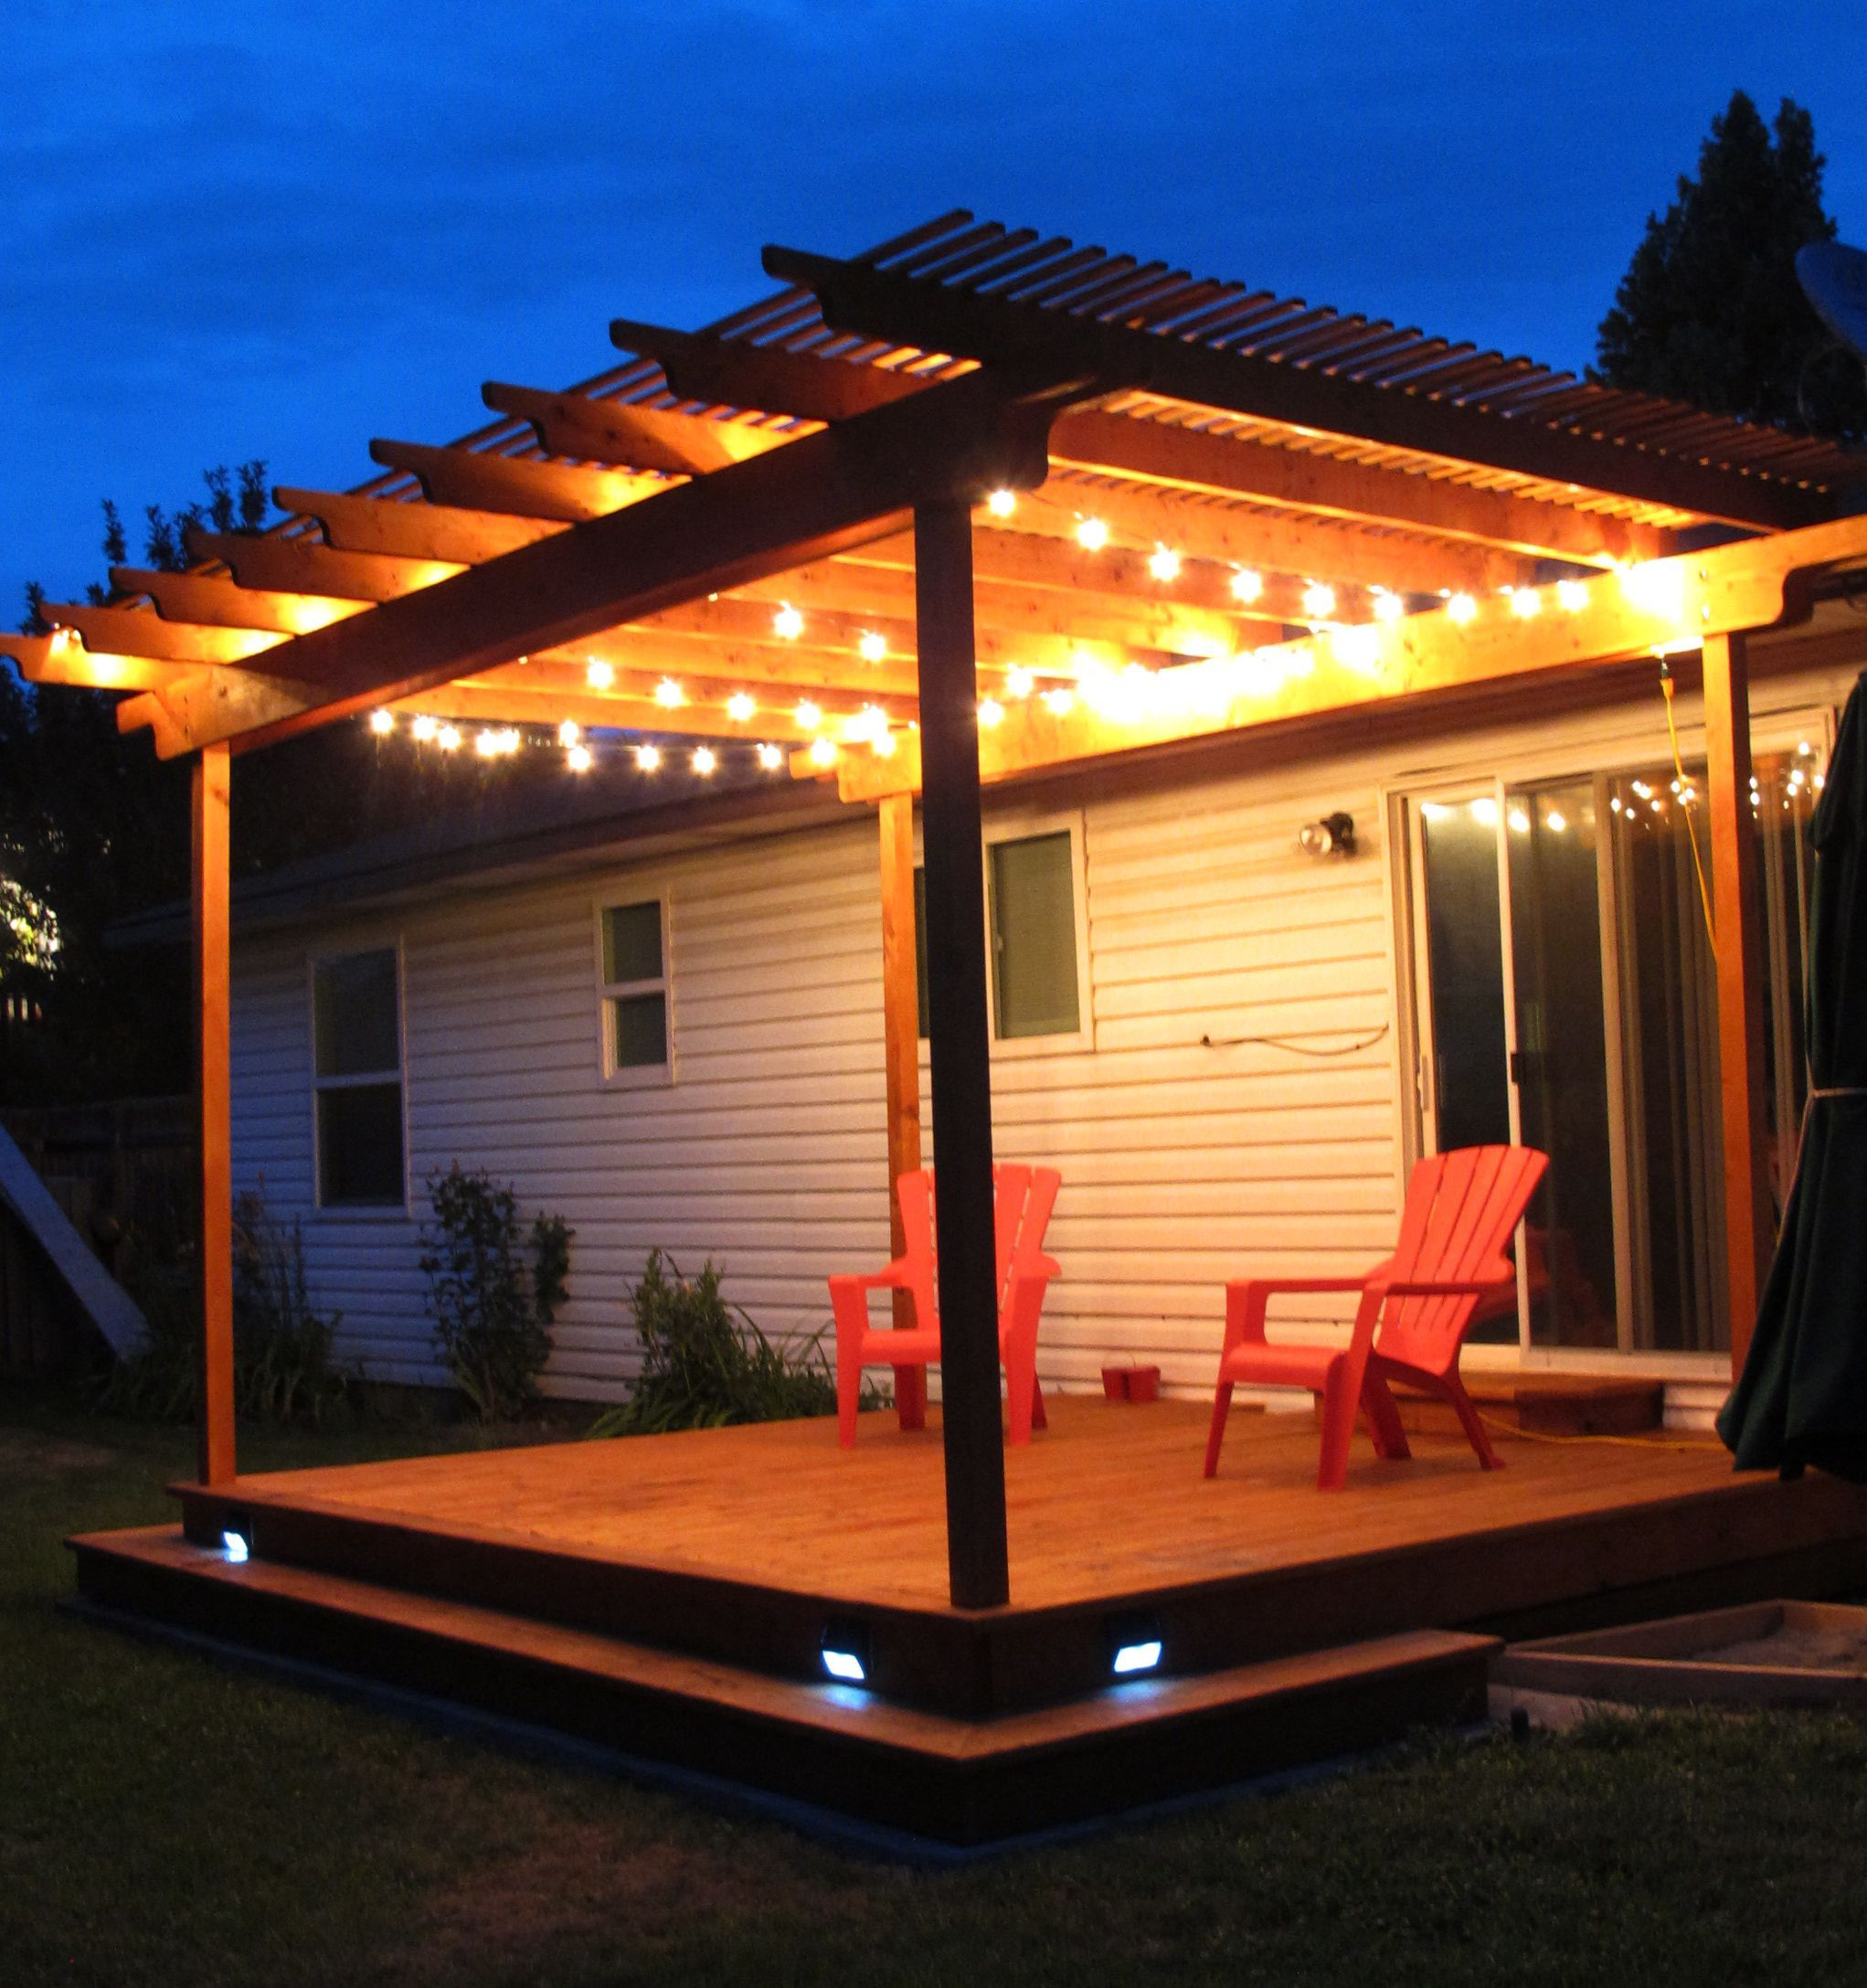 Awesome pergola deck with wraparound step and strand lighting it awesome pergola deck with wraparound step and strand lighting it also has solar powered stair aloadofball Images